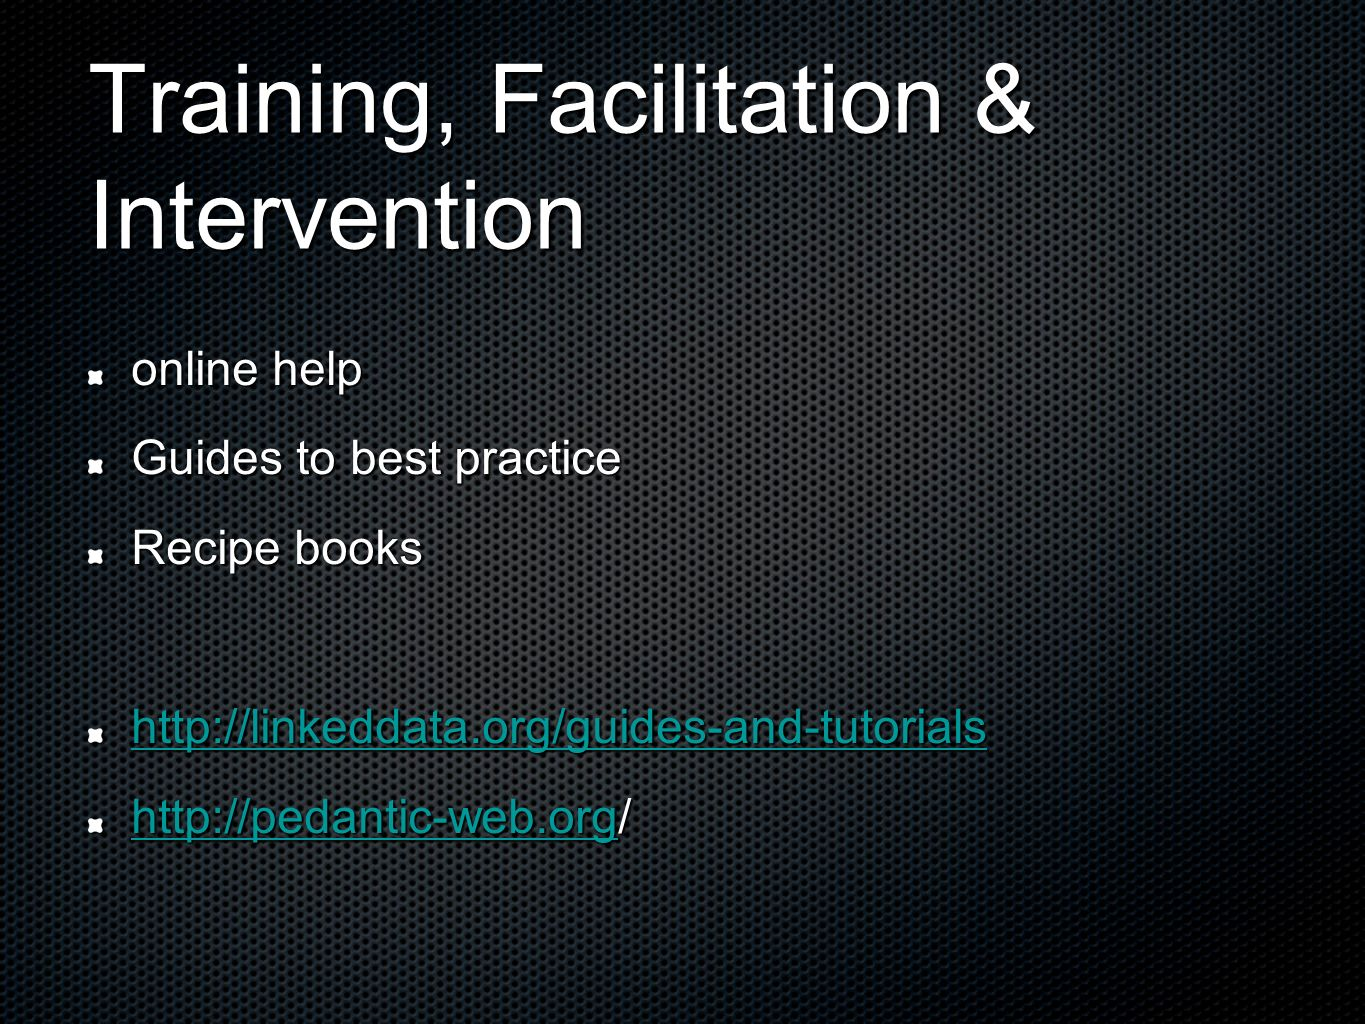 Training, Facilitation & Intervention online help Guides to best practice Recipe books http://linkeddata.org/guides-and-tutorials http://pedantic-web.